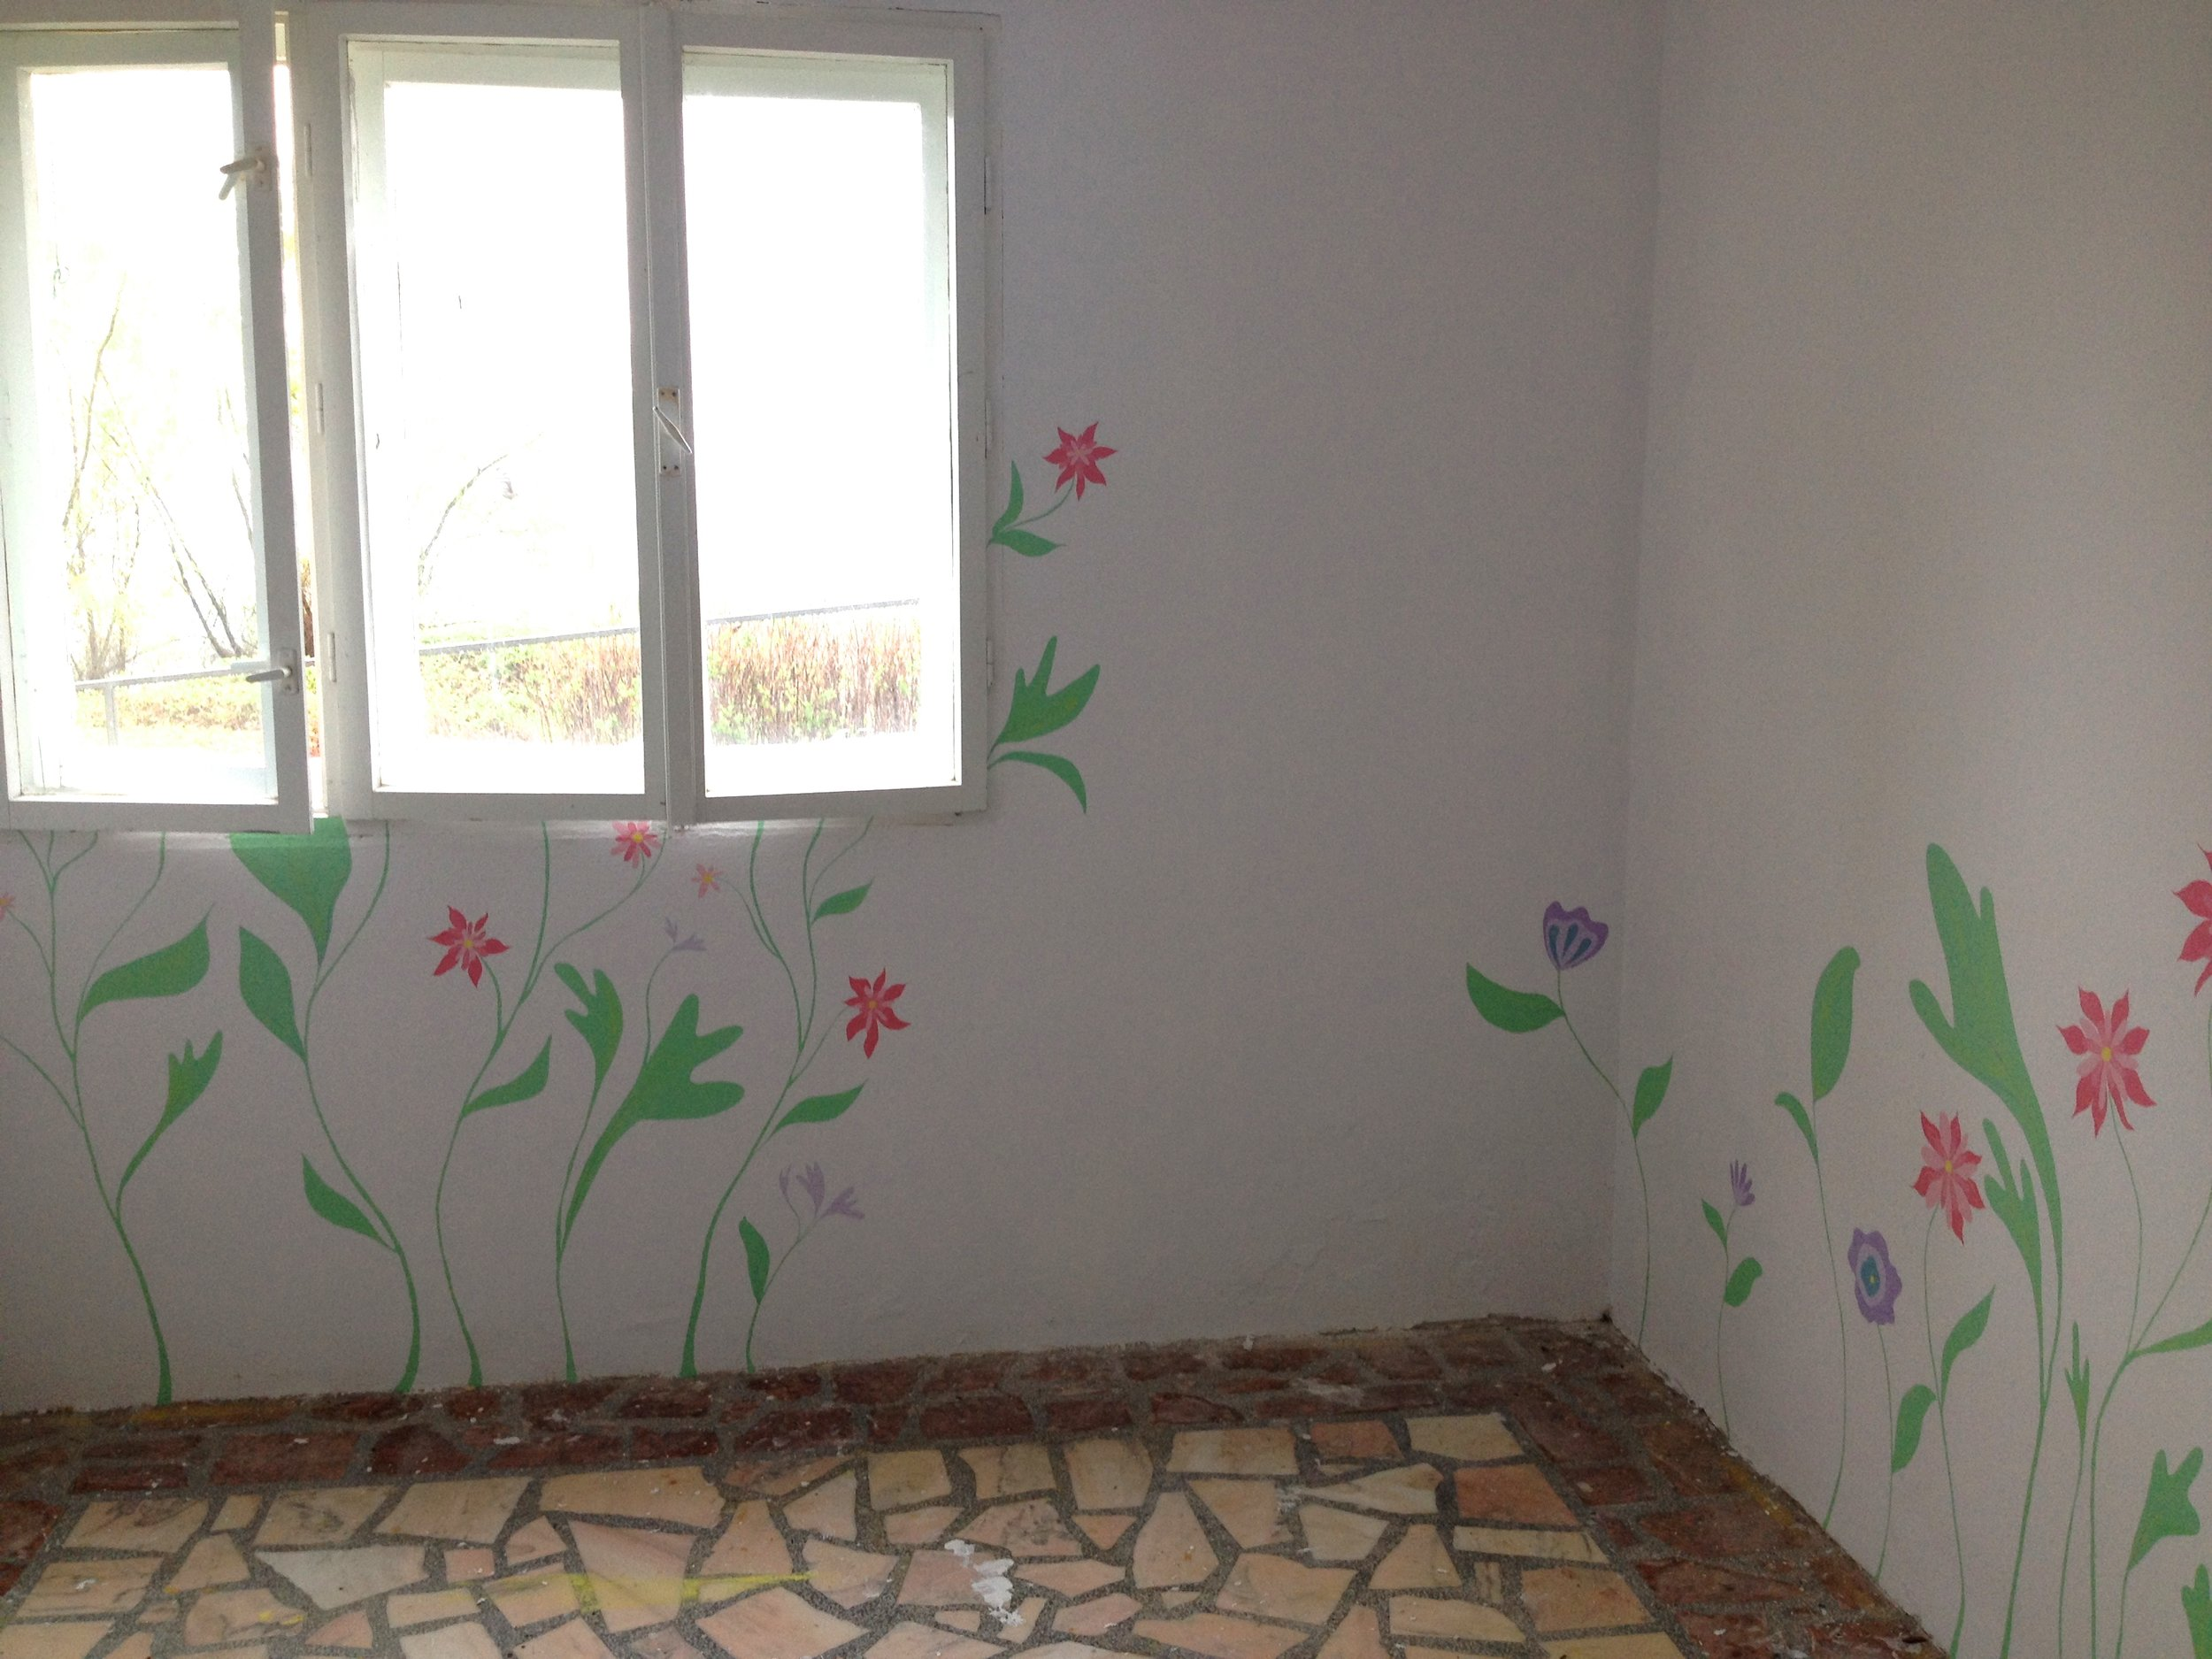 painting a garden mural in the prayer room at Casa Harilui, a retreat home for disabled children in Romania